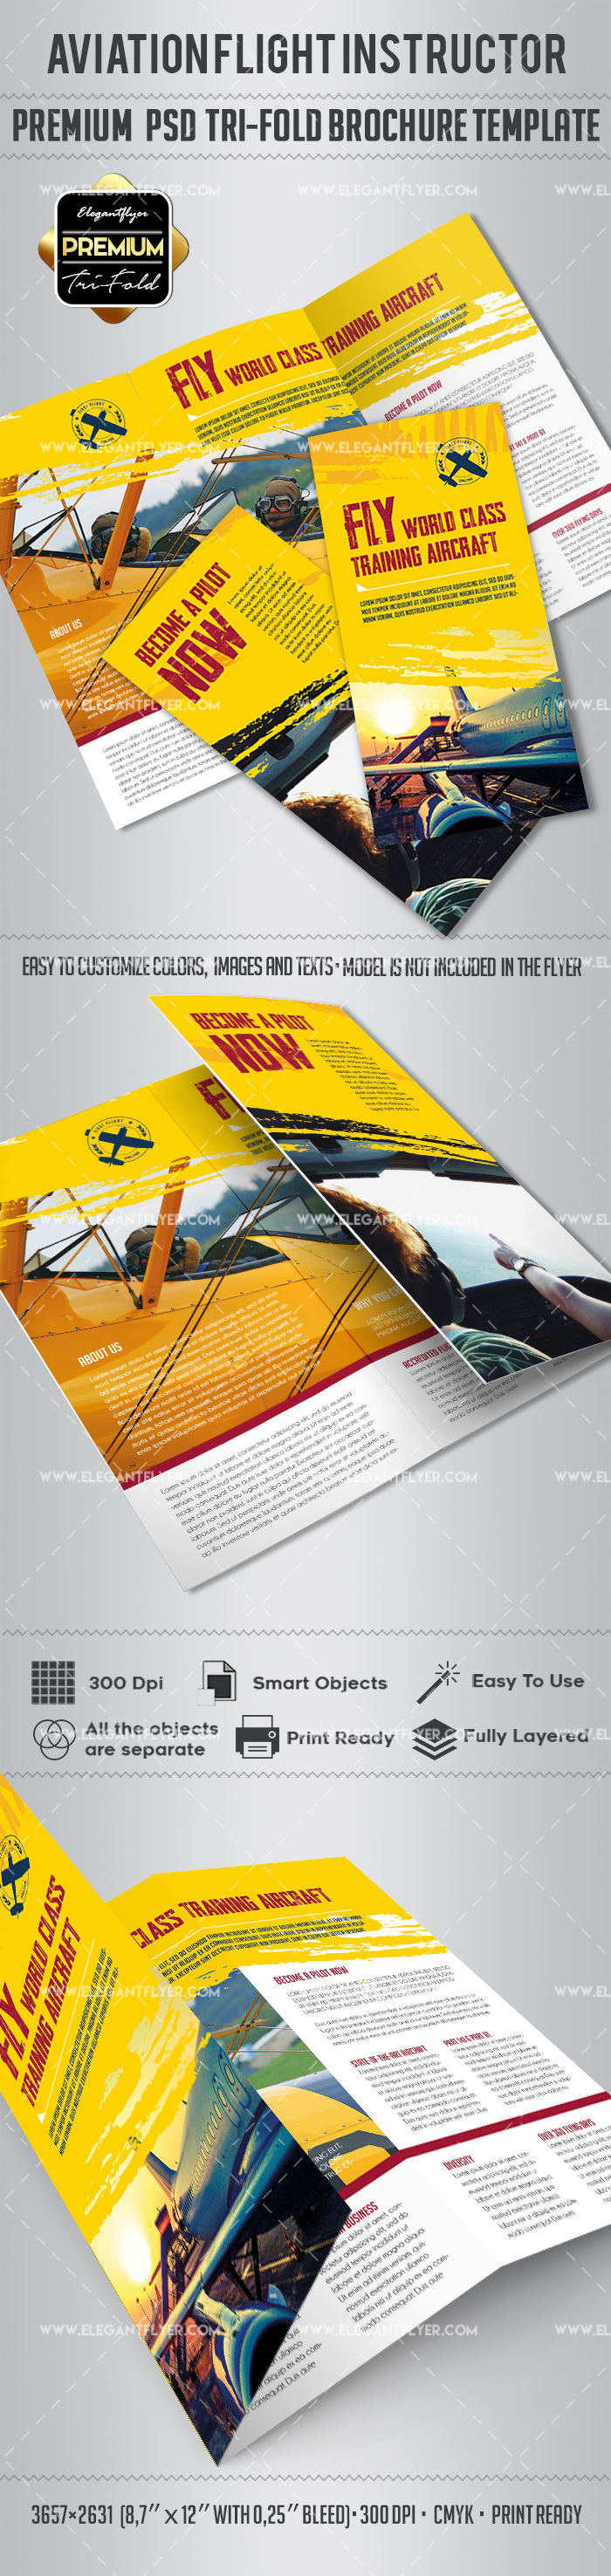 PSD Brochure for Aviation Flight